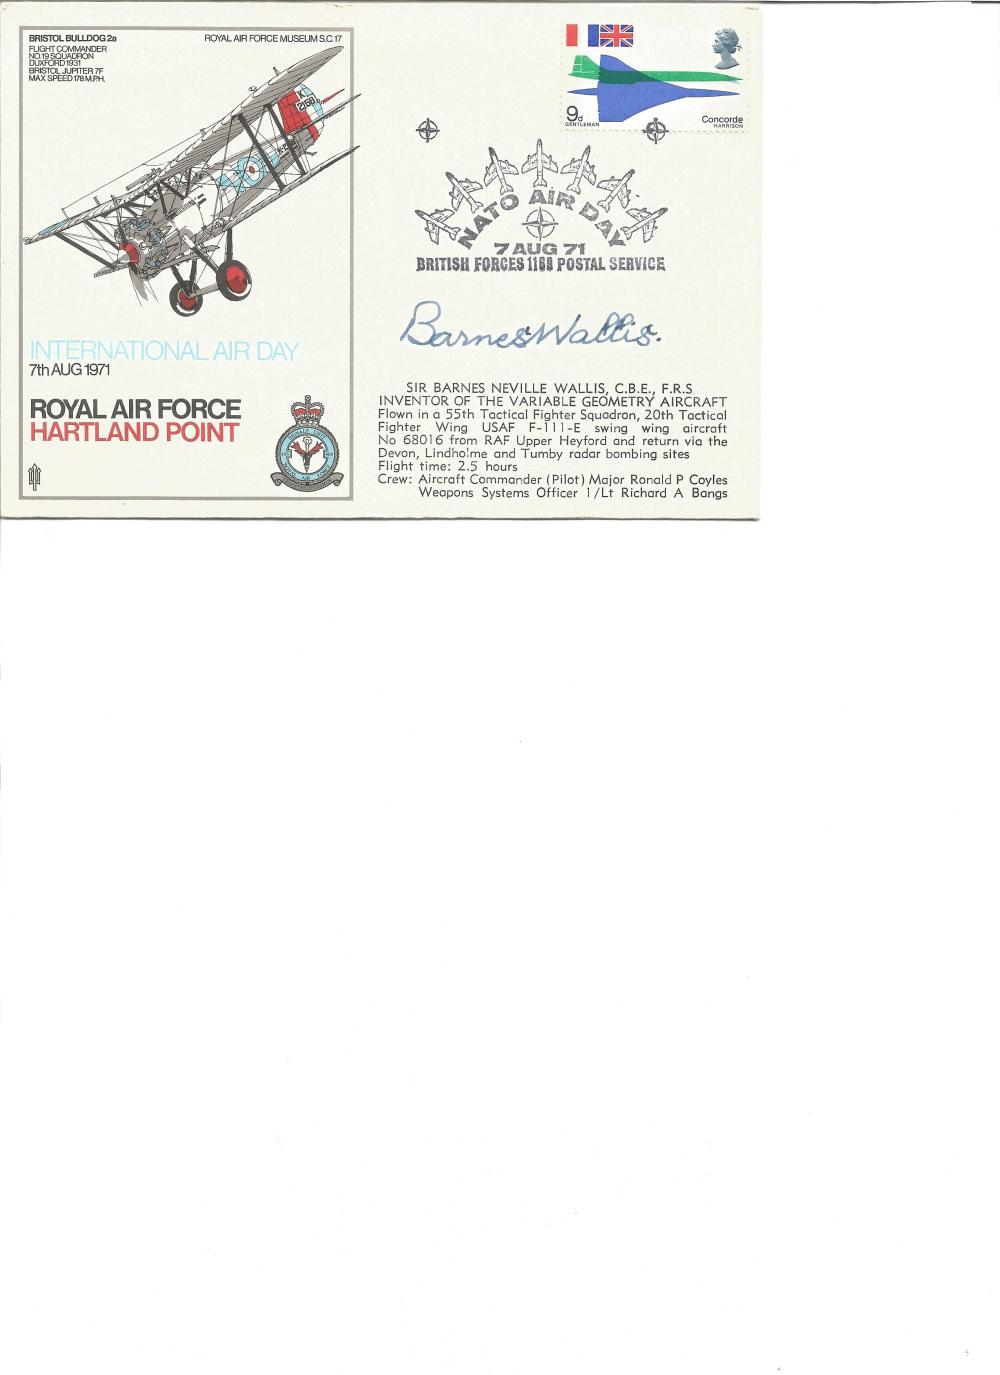 Barnes Wallis signed RAF Museum cover. Good Condition. All signed pieces come with a Certificate